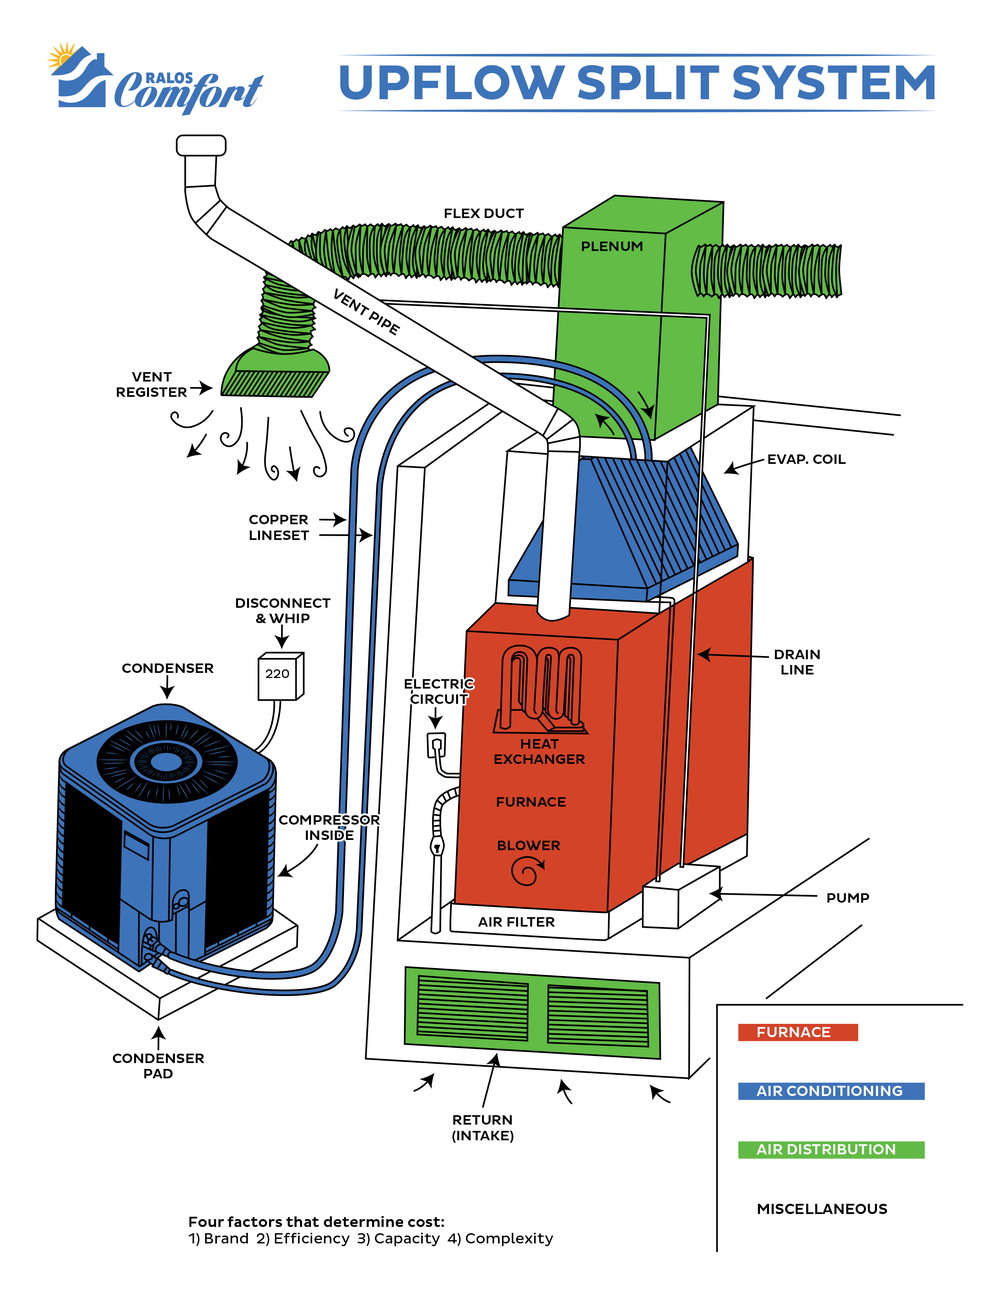 Upflow Split System diagram